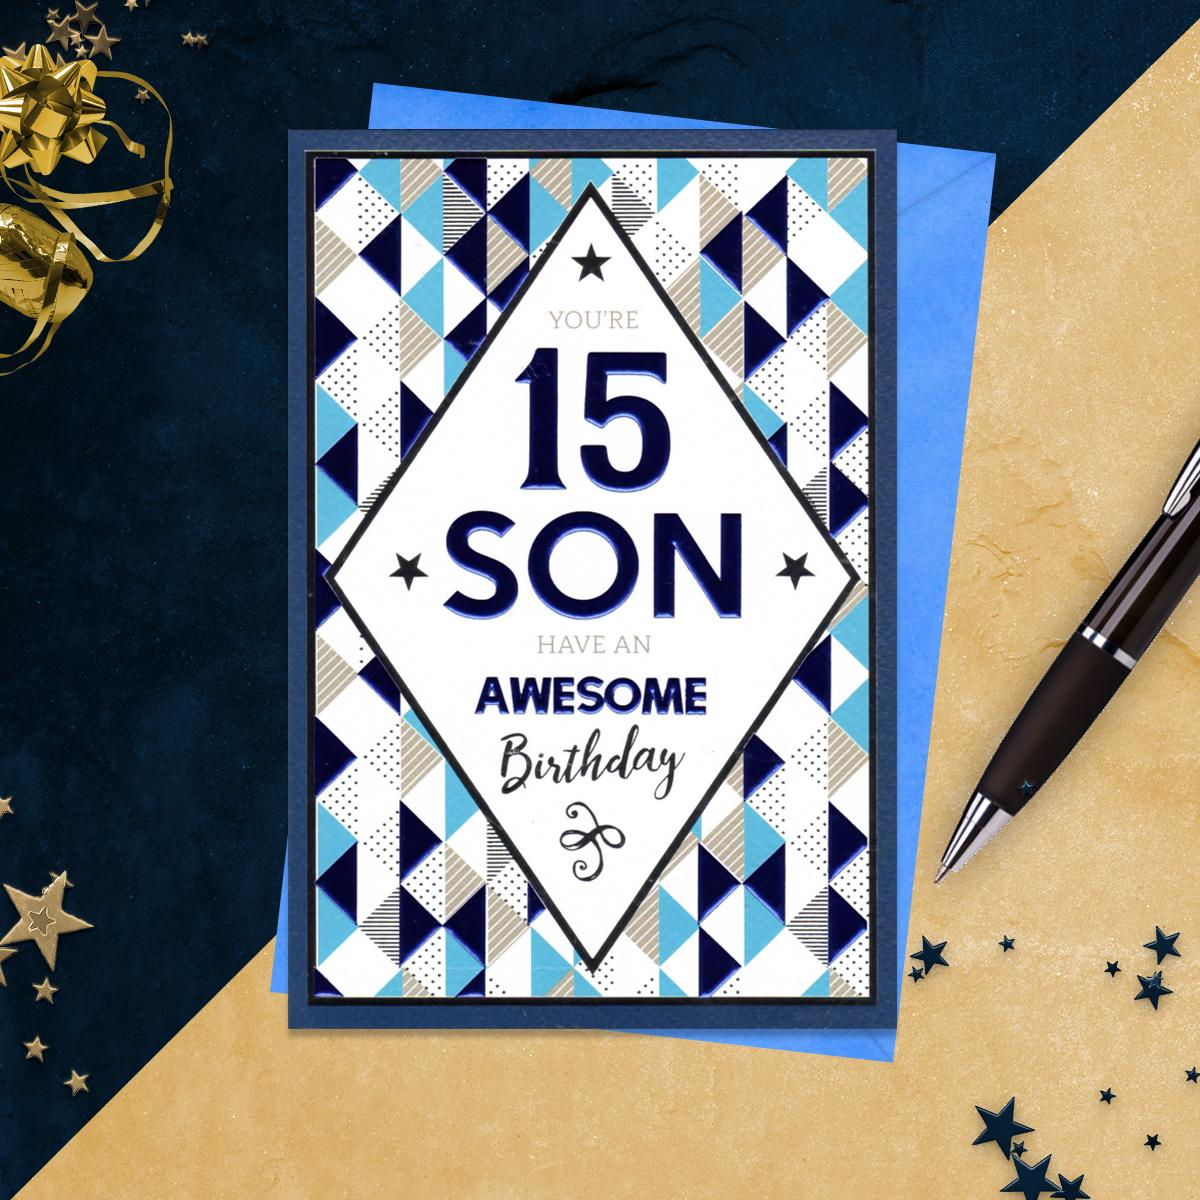 15th Son Birthday Card Alongside Its Blue Envelope